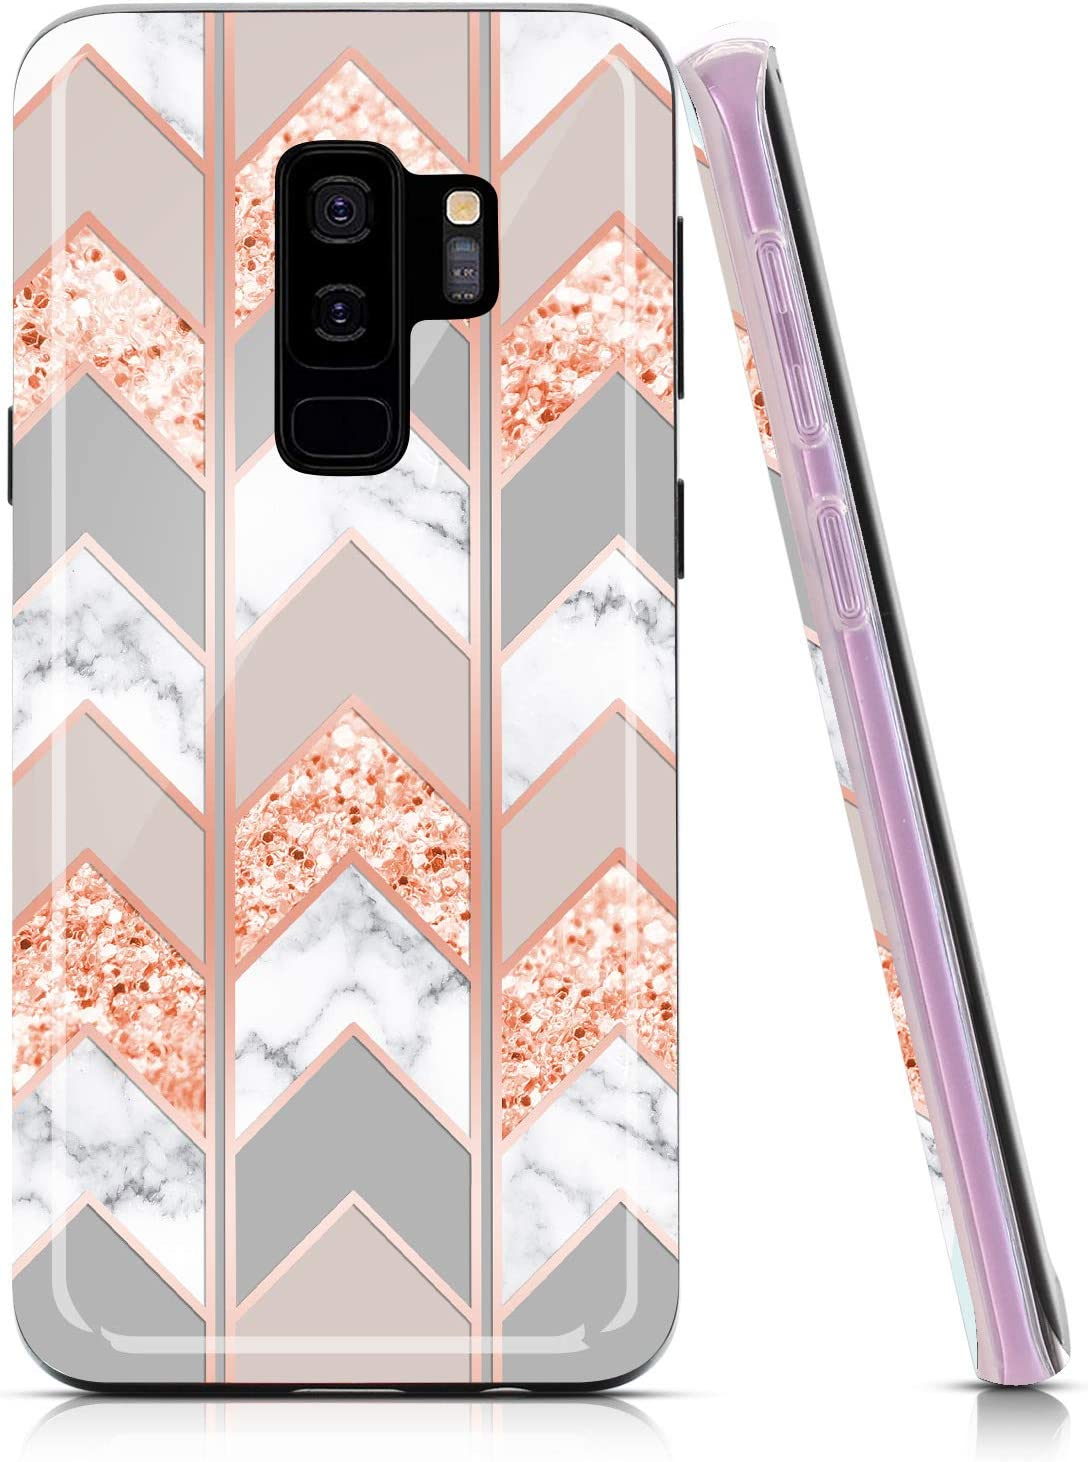 BAISRKE Marble Case for Galaxy S9 Plus, Shiny Rose Gold Lines Wave Geometric Design Case Slim Soft TPU Rubber Bumper Silicone Protective Phone Case Cover for Samsung Galaxy S9+ Plus [Pink]